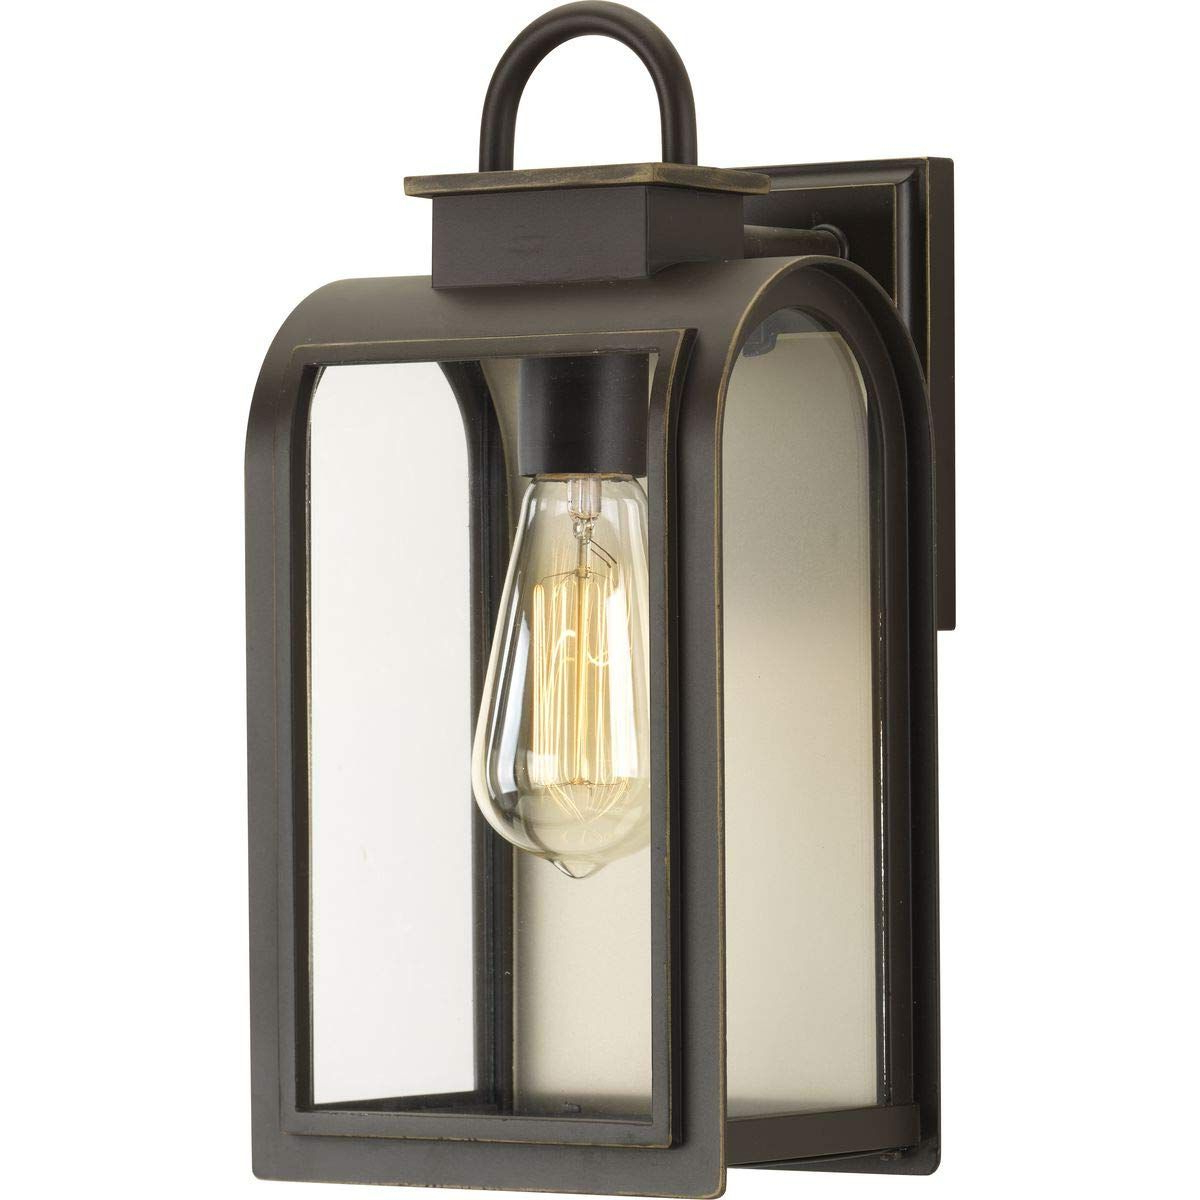 Well Liked Brierly Oil Rubbed Bronze/black Outdoor Wall Lanterns Throughout Progress Lighting P6030 108 Traditional/casual 1 100w Med (View 15 of 20)